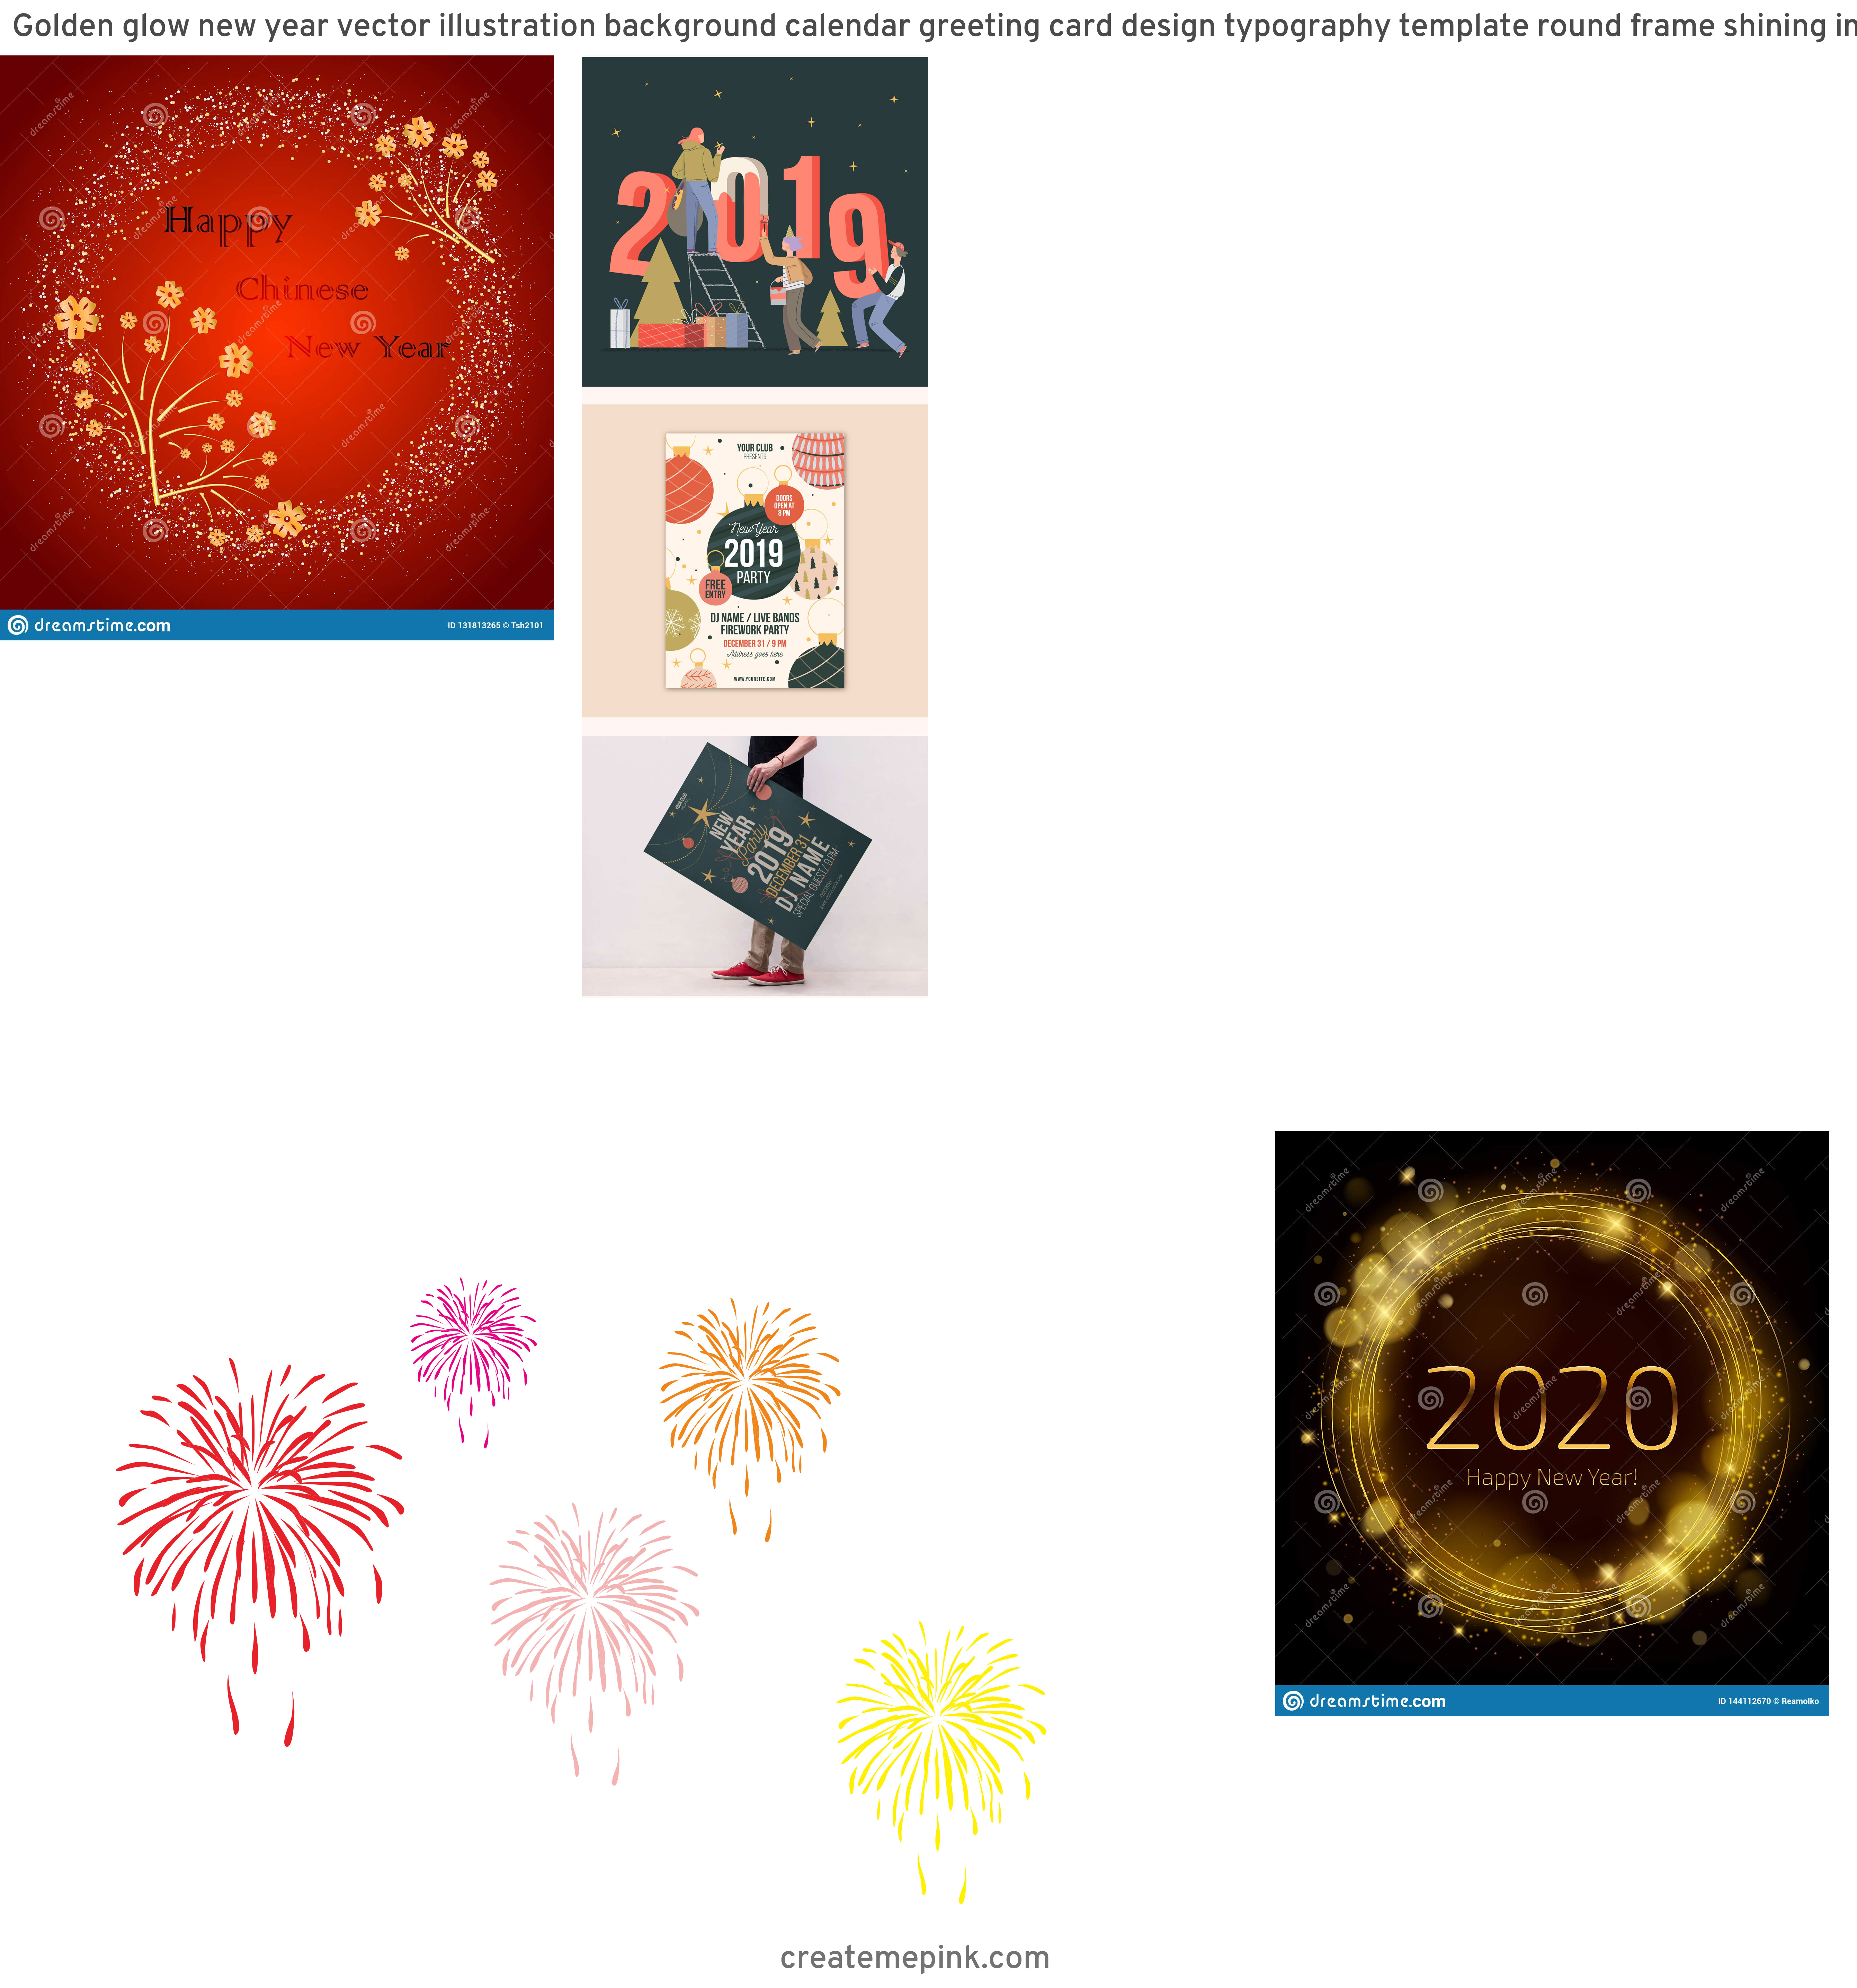 Free New Year Vector: Golden Glow New Year Vector Illustration Background Calendar Greeting Card Design Typography Template Round Frame Shining Image